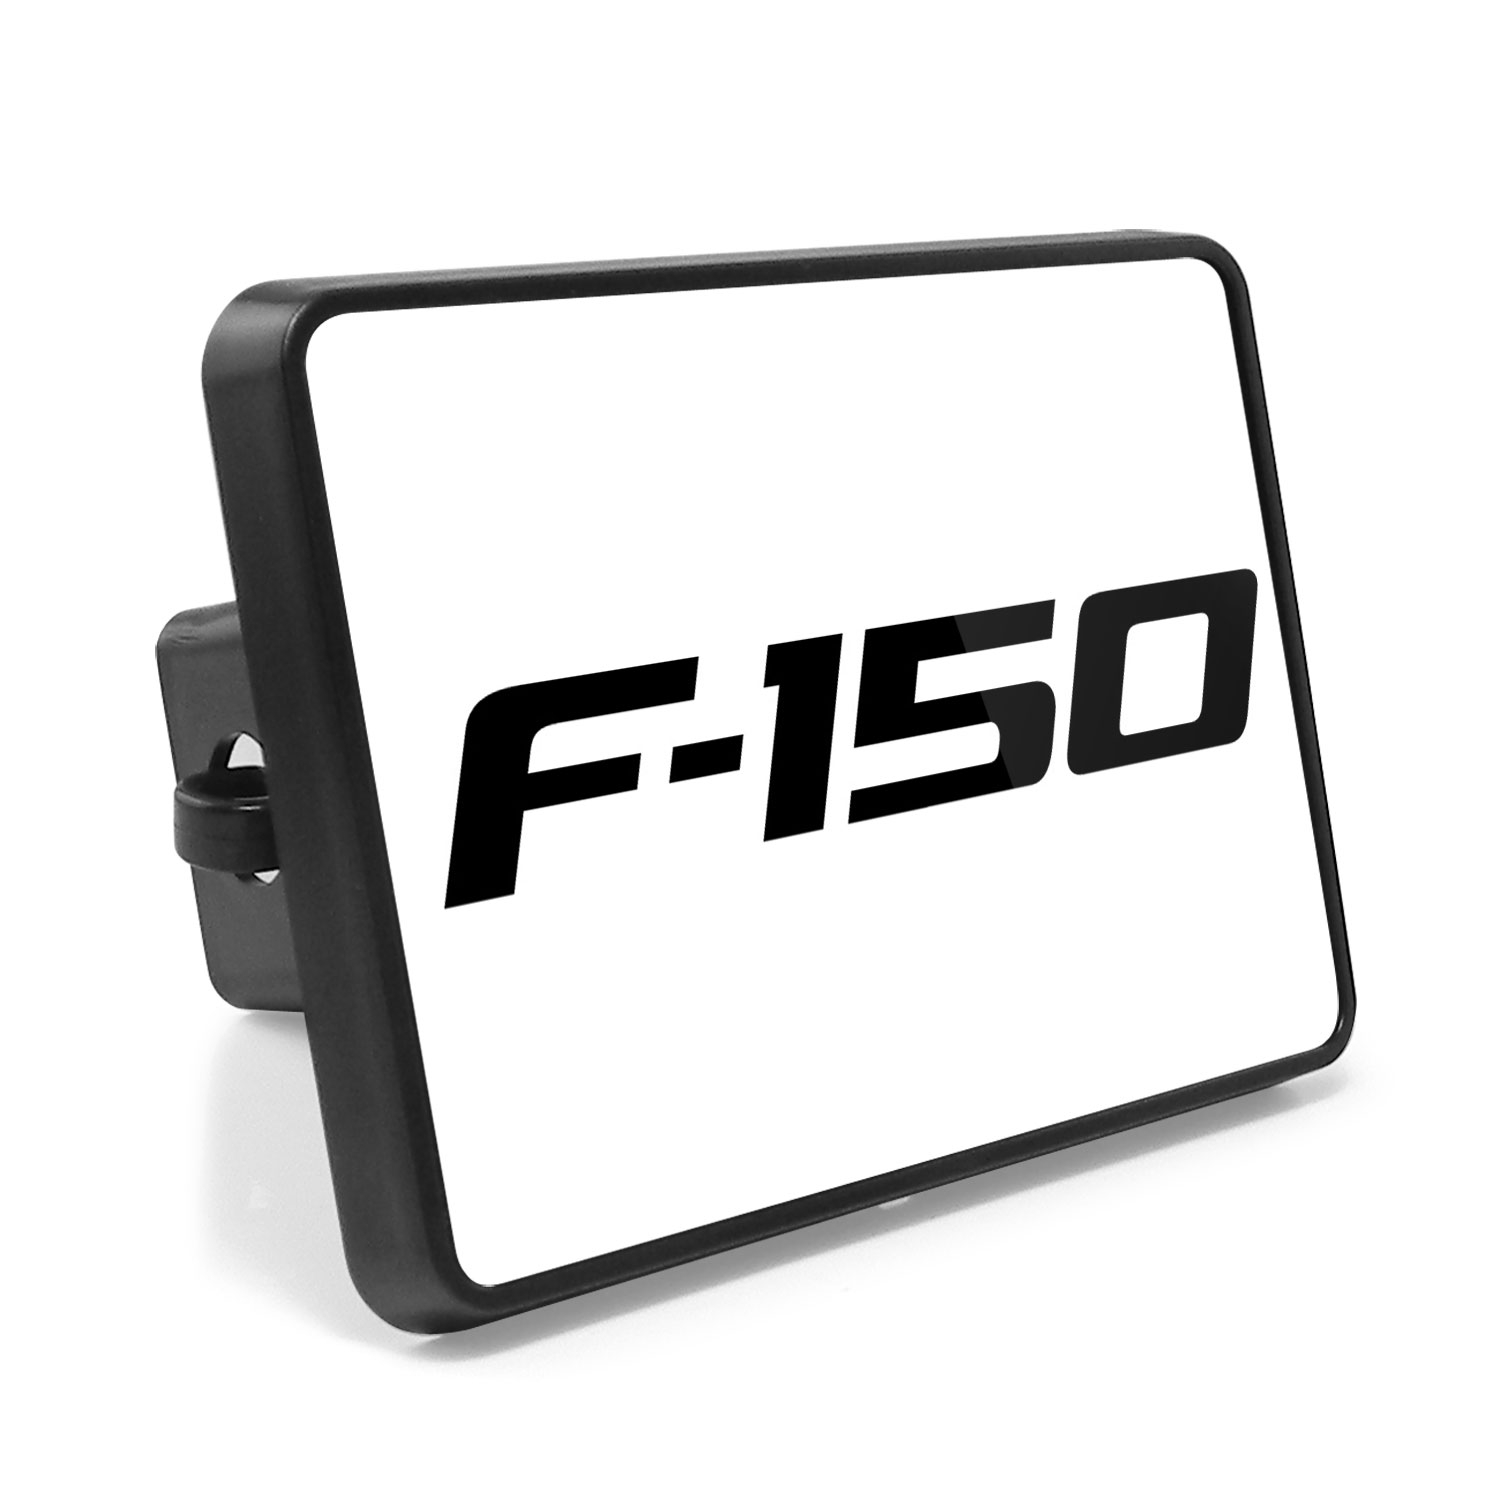 Ford F-150 2009-2014 UV Graphic White Metal Plate on ABS Plastic 2 inch Tow Hitch Cover